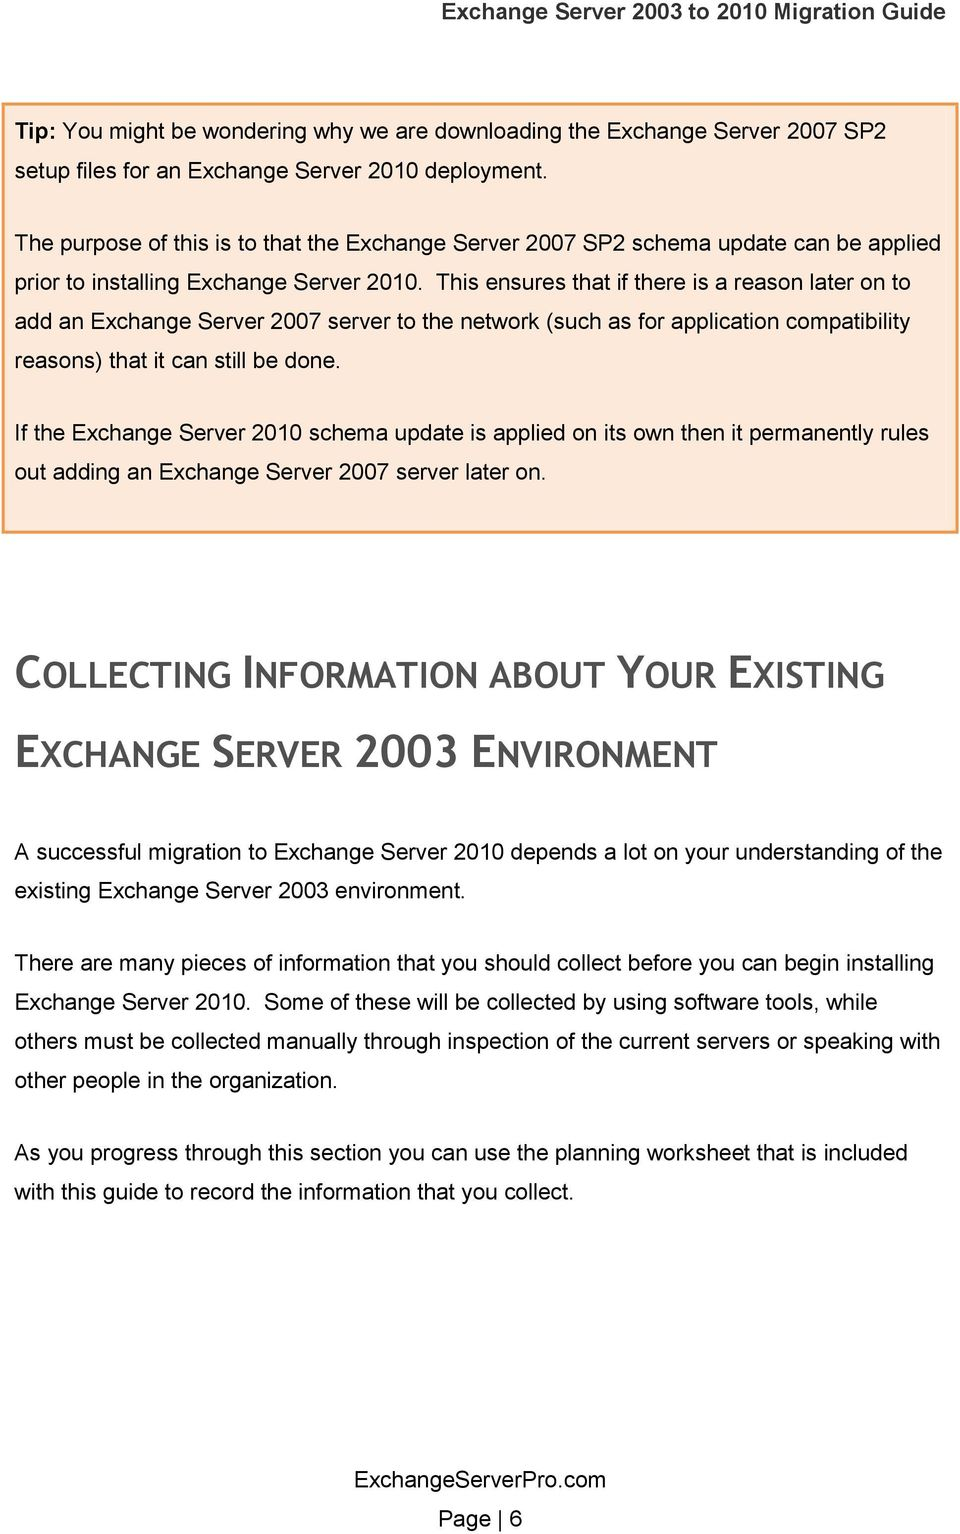 10 steps for ensuring a smooth migration from exchange server to.